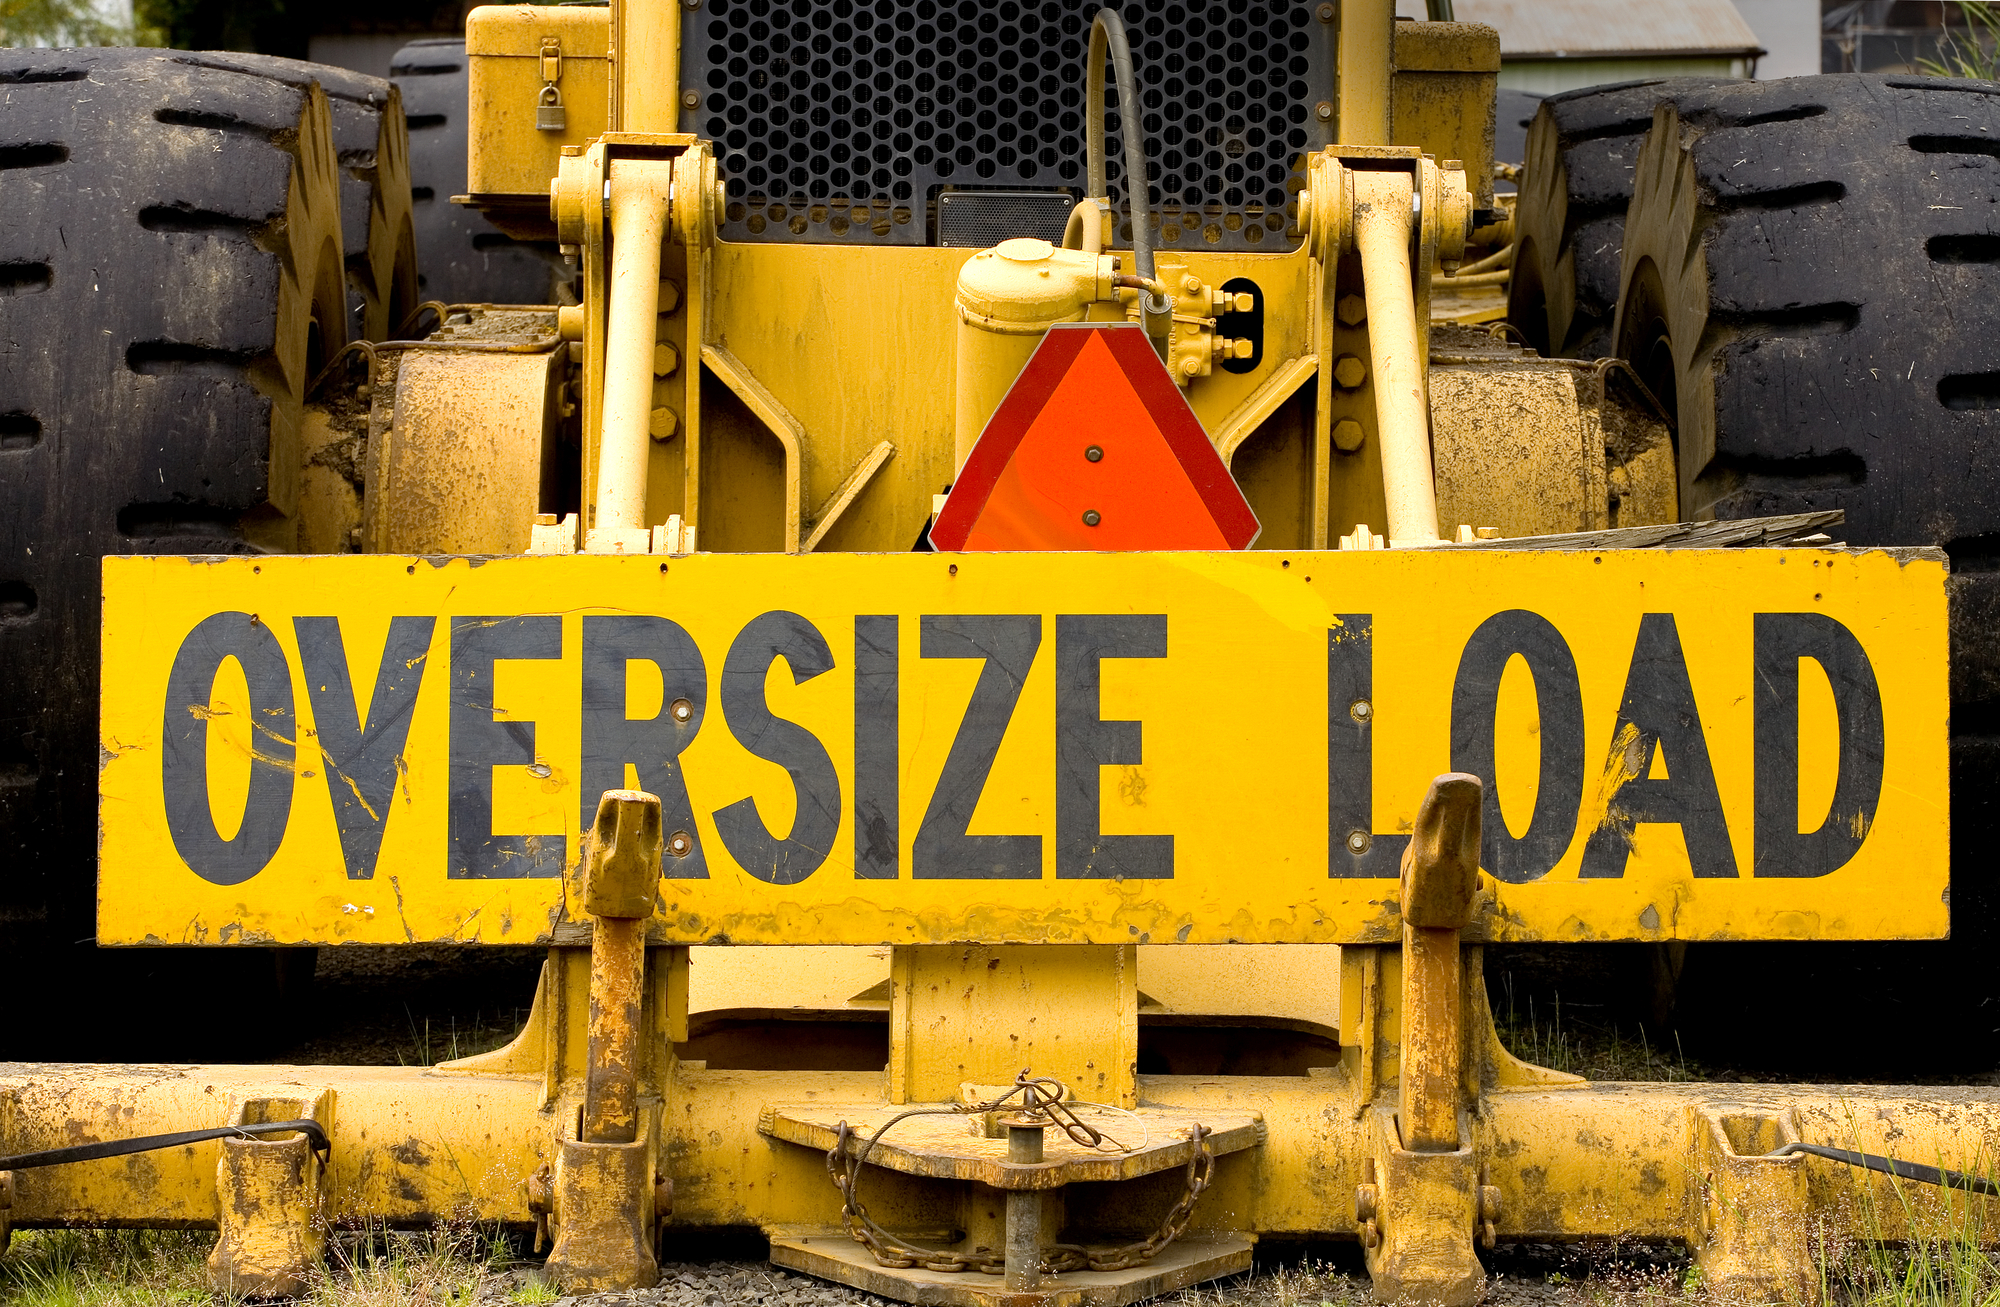 Oversized load sign